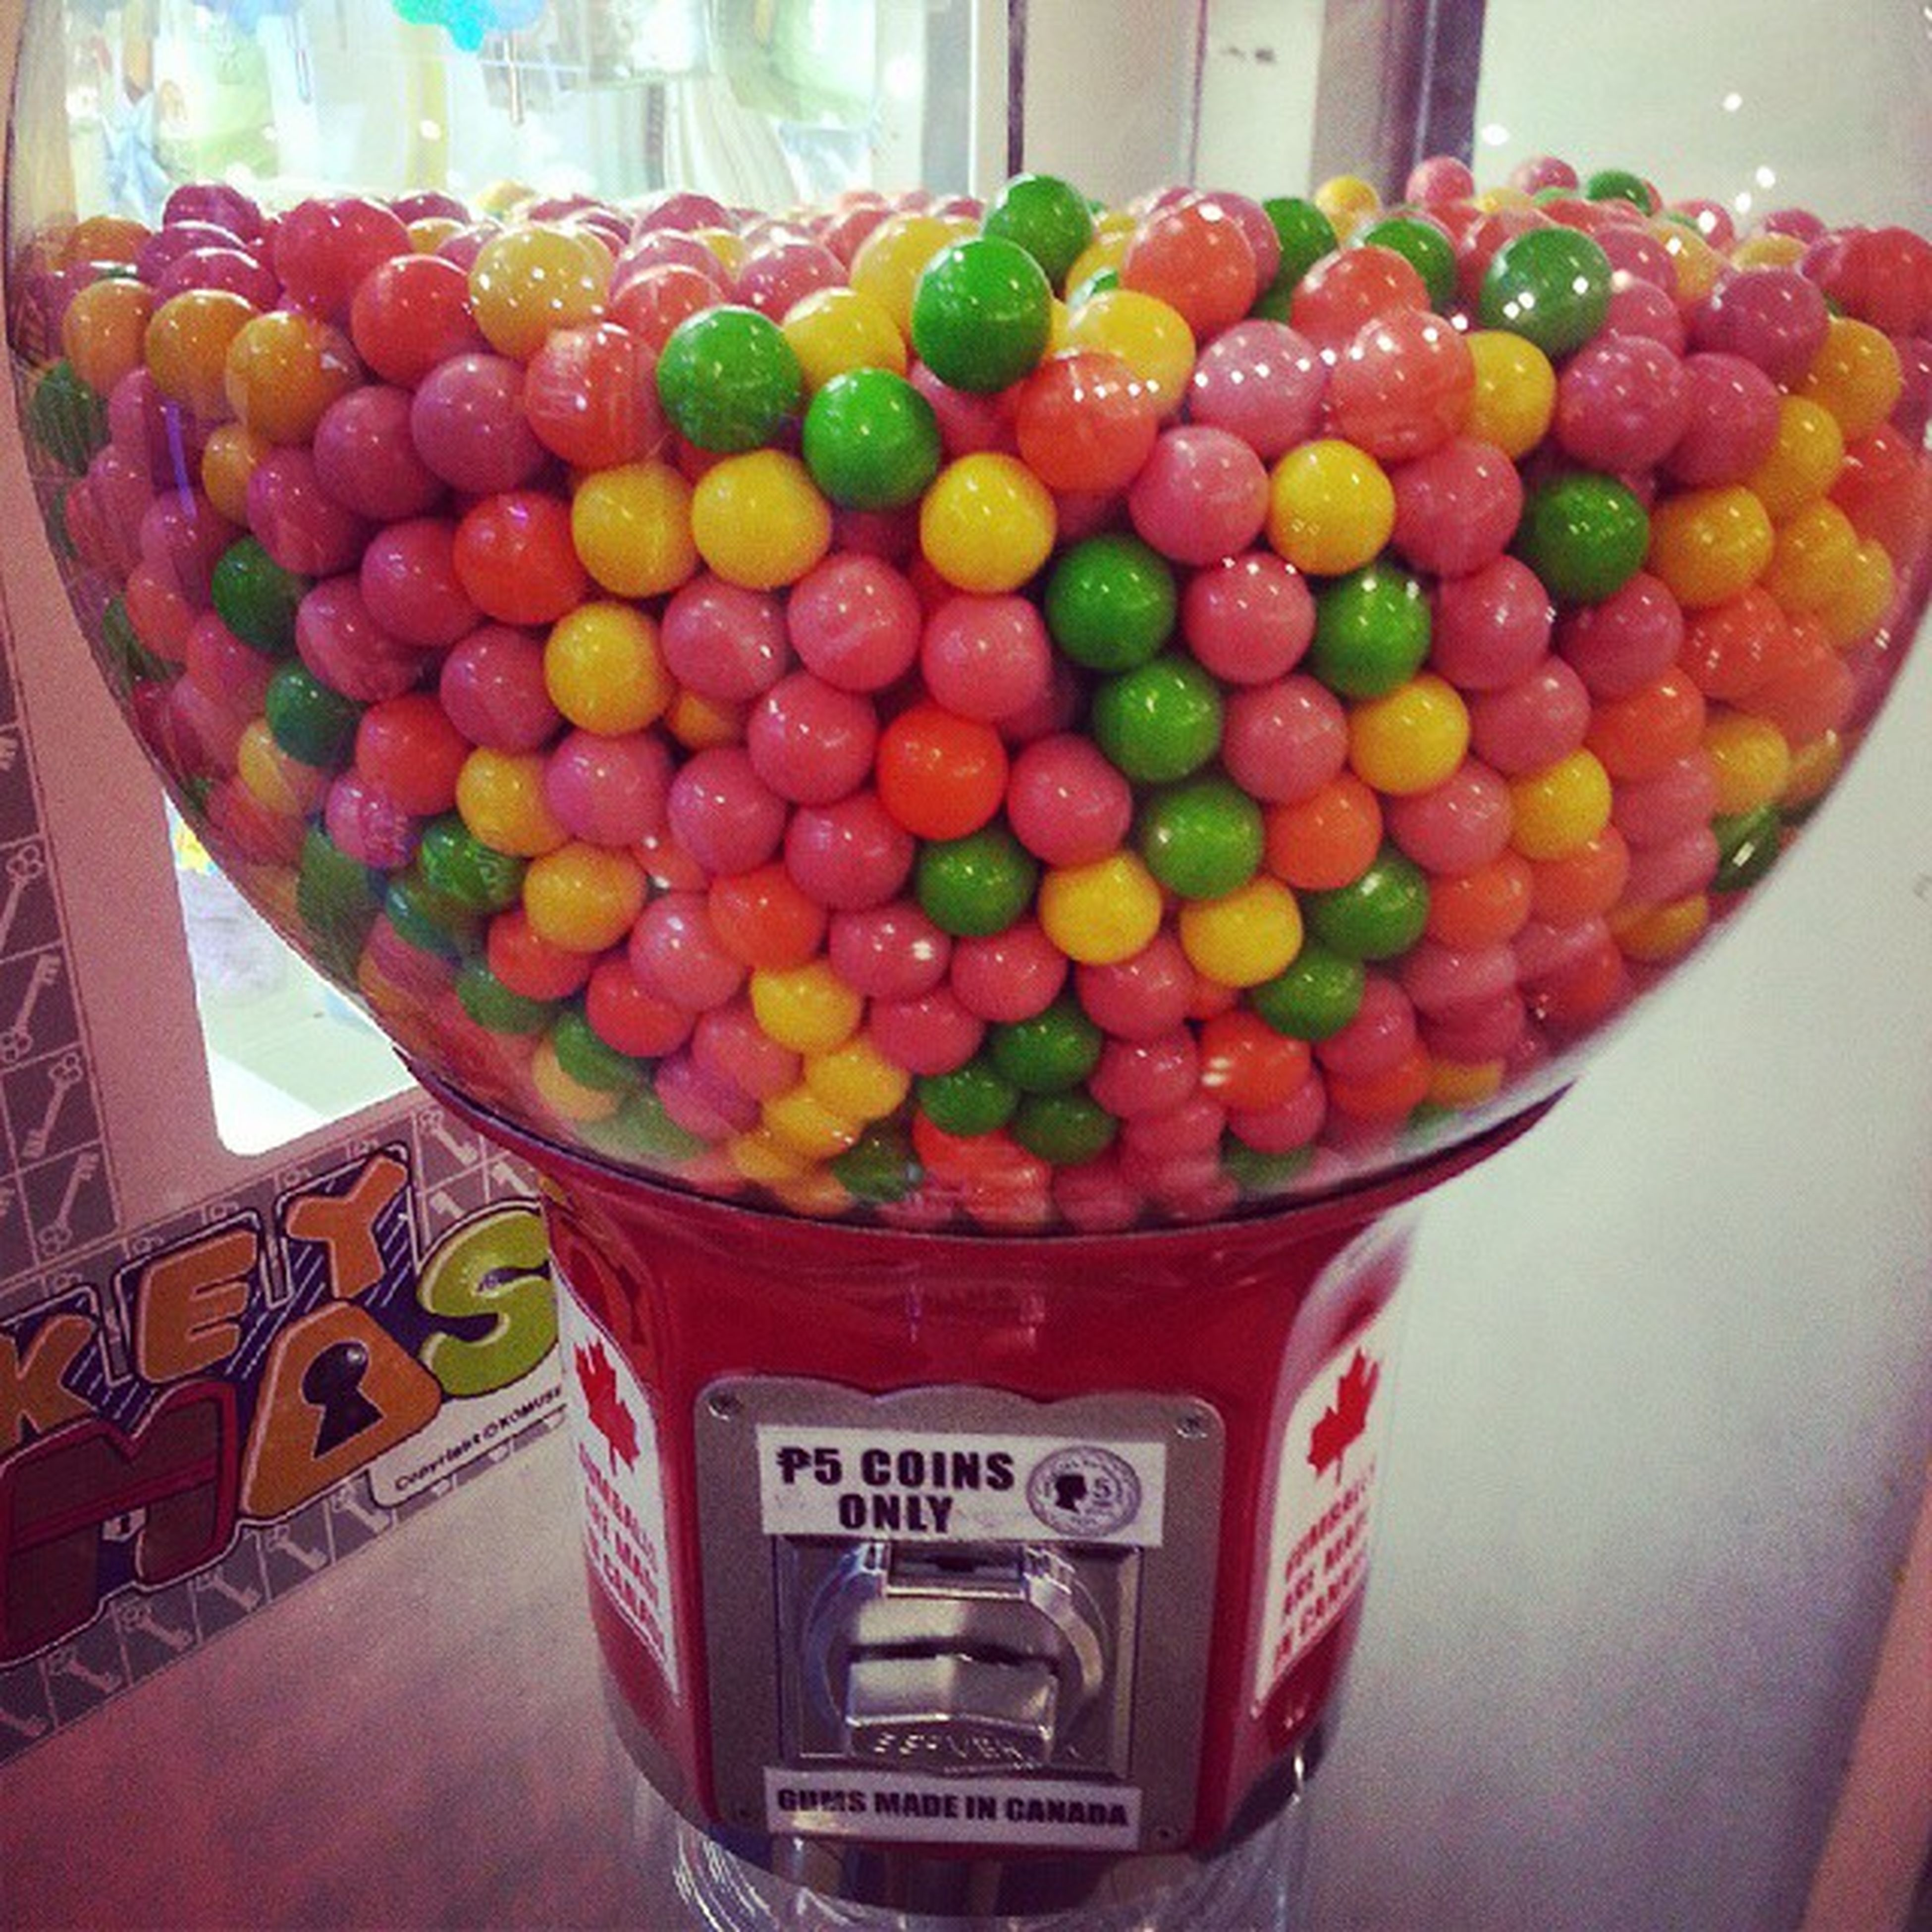 Went to the mall and saw this awesome Gumballs!!! Inspired by Theworldofgumball 今日はモールへ行きます。